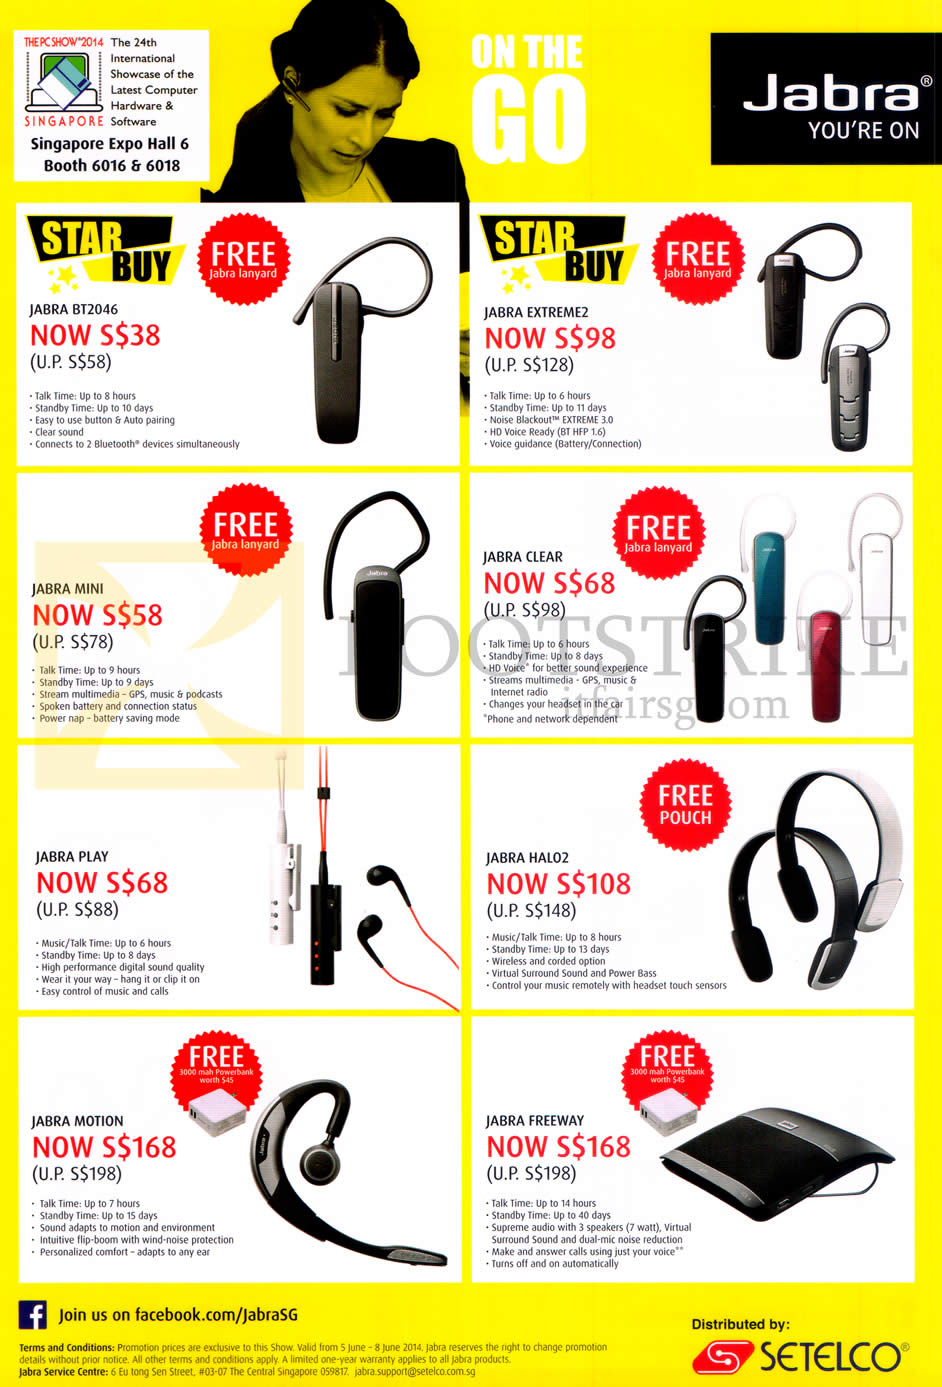 PC SHOW 2014 price list image brochure of Jabra Bluetooth Headsets, Speakers, BT2046, Mini, Extreme2, Clear, Halo2, Play, Motion, Freeway